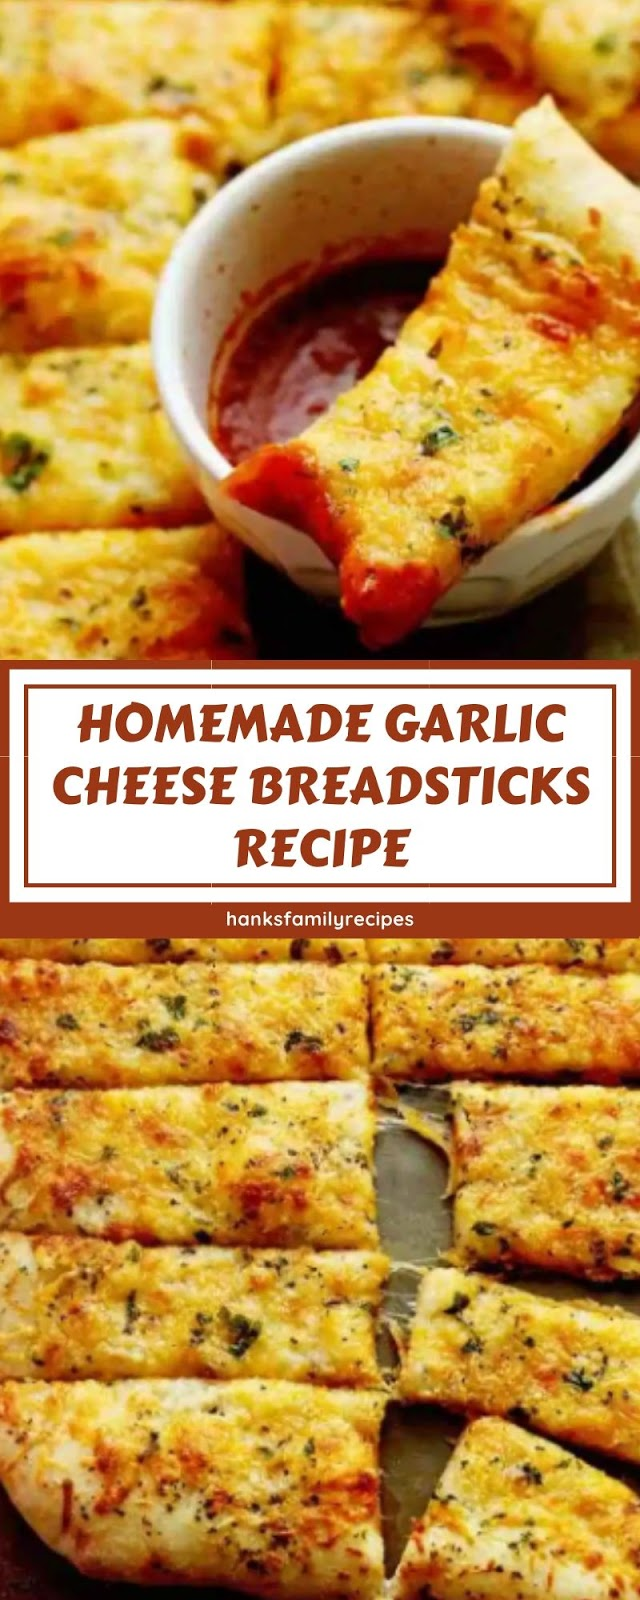 HOMEMADE GARLIC CHEESE BREADSTICKS RECIPE